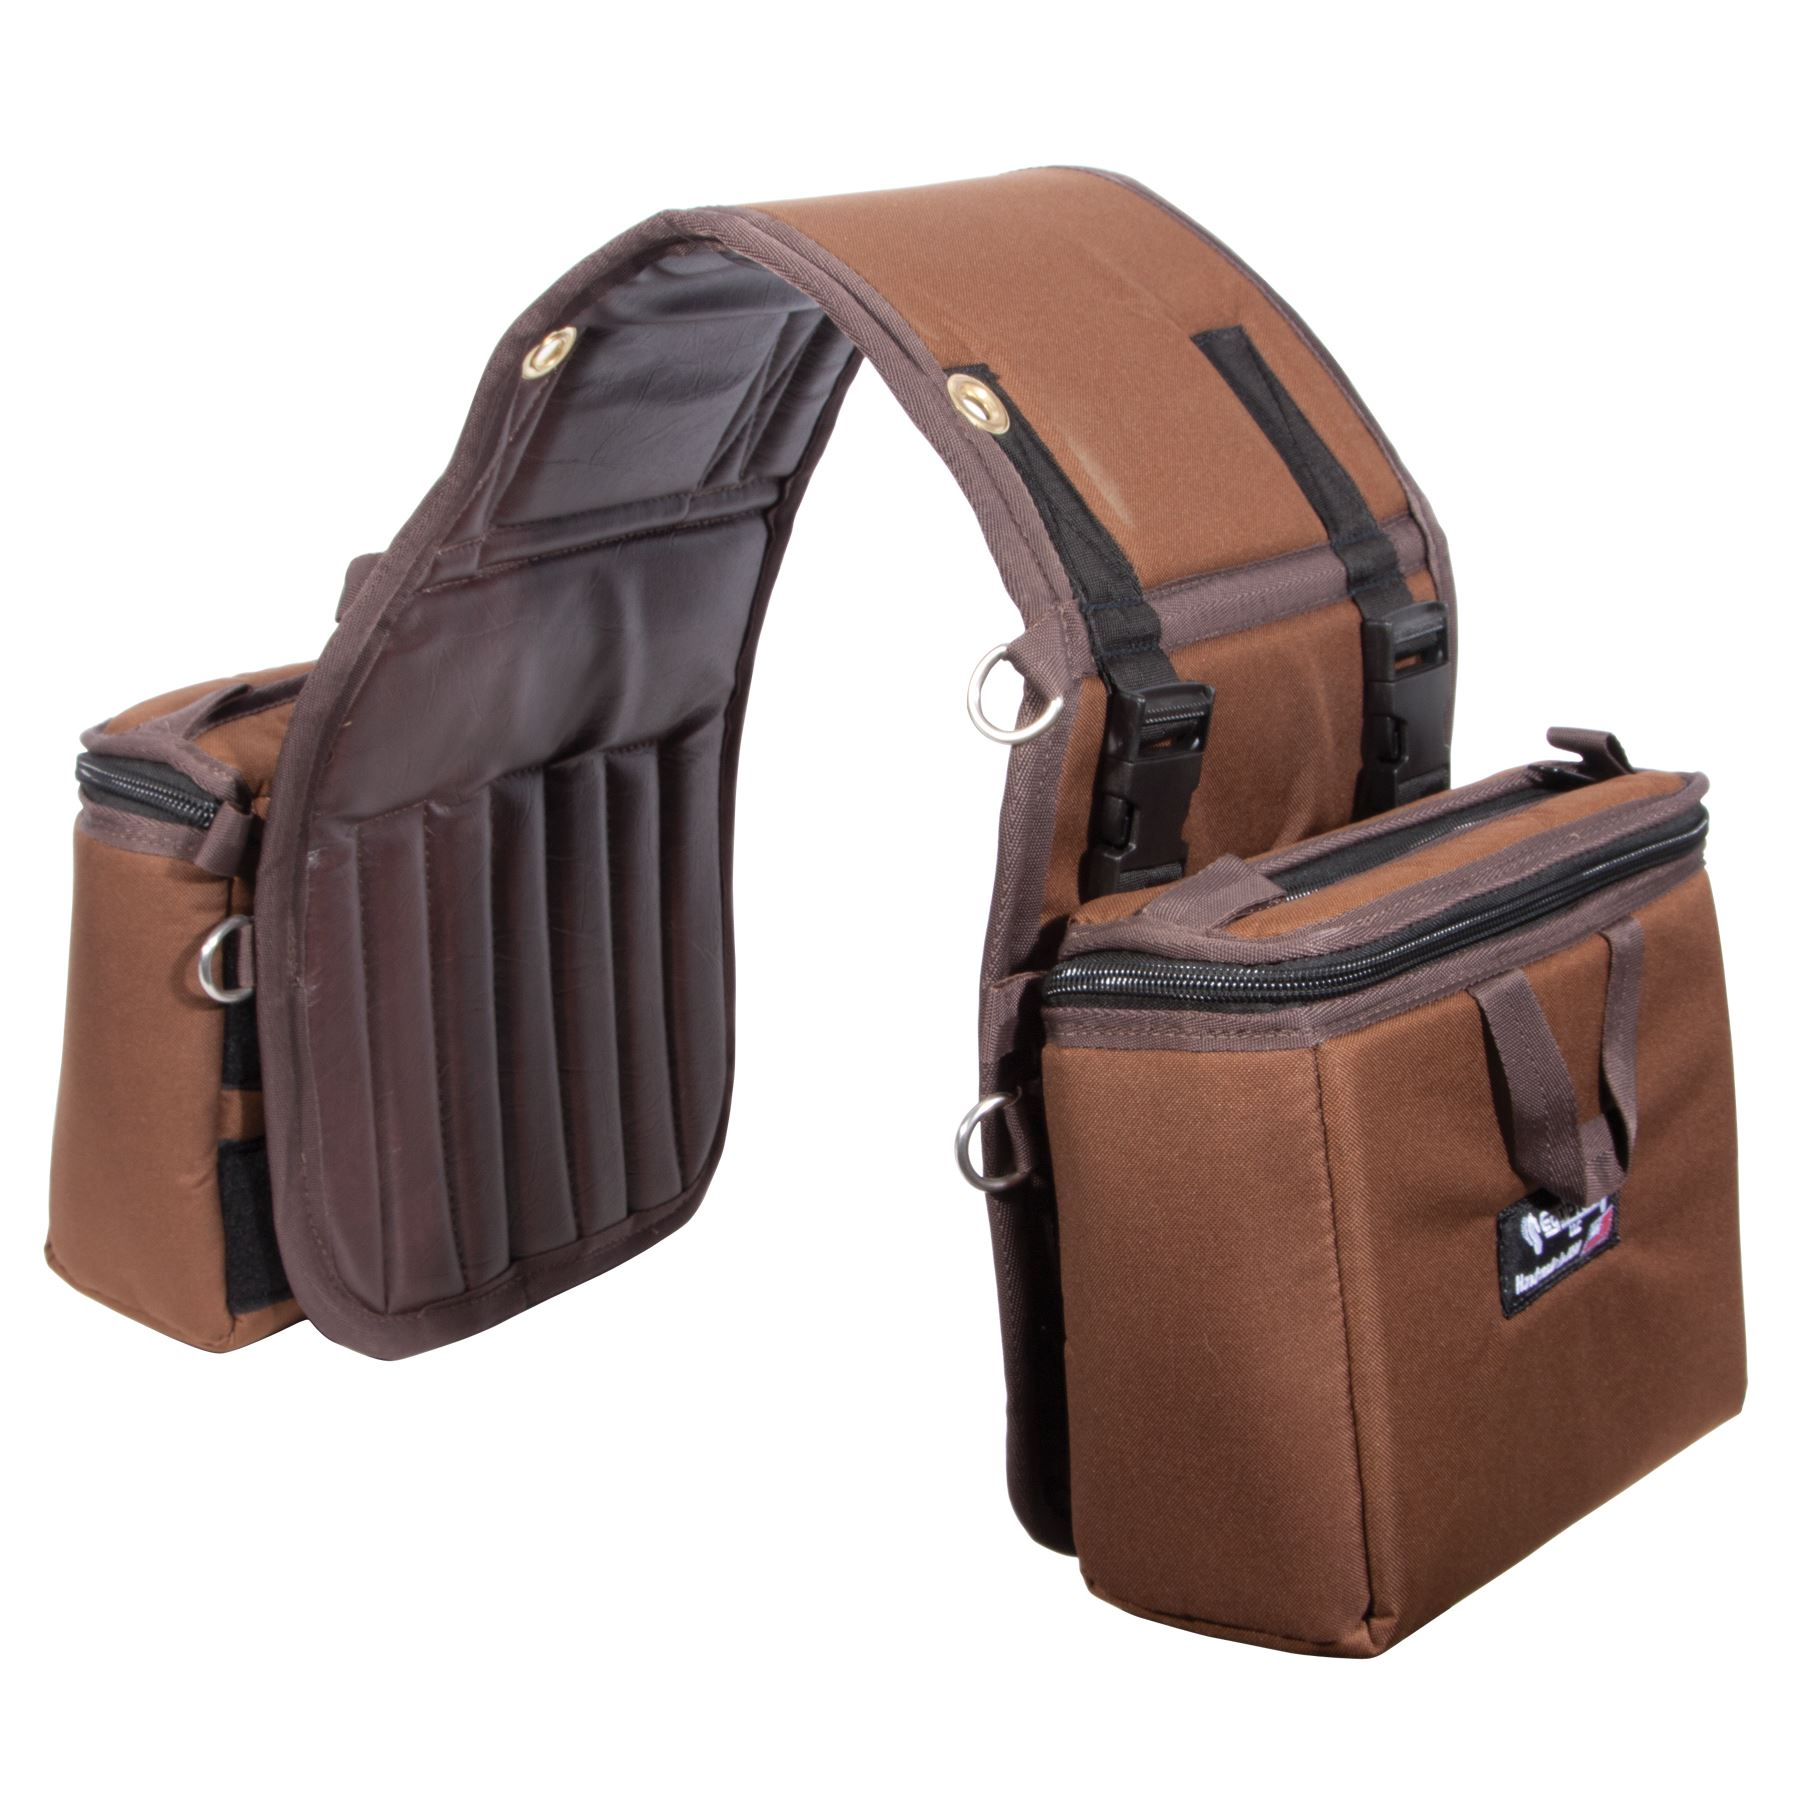 Equi-Tech Stay Put Insulated Saddle Bag-Small